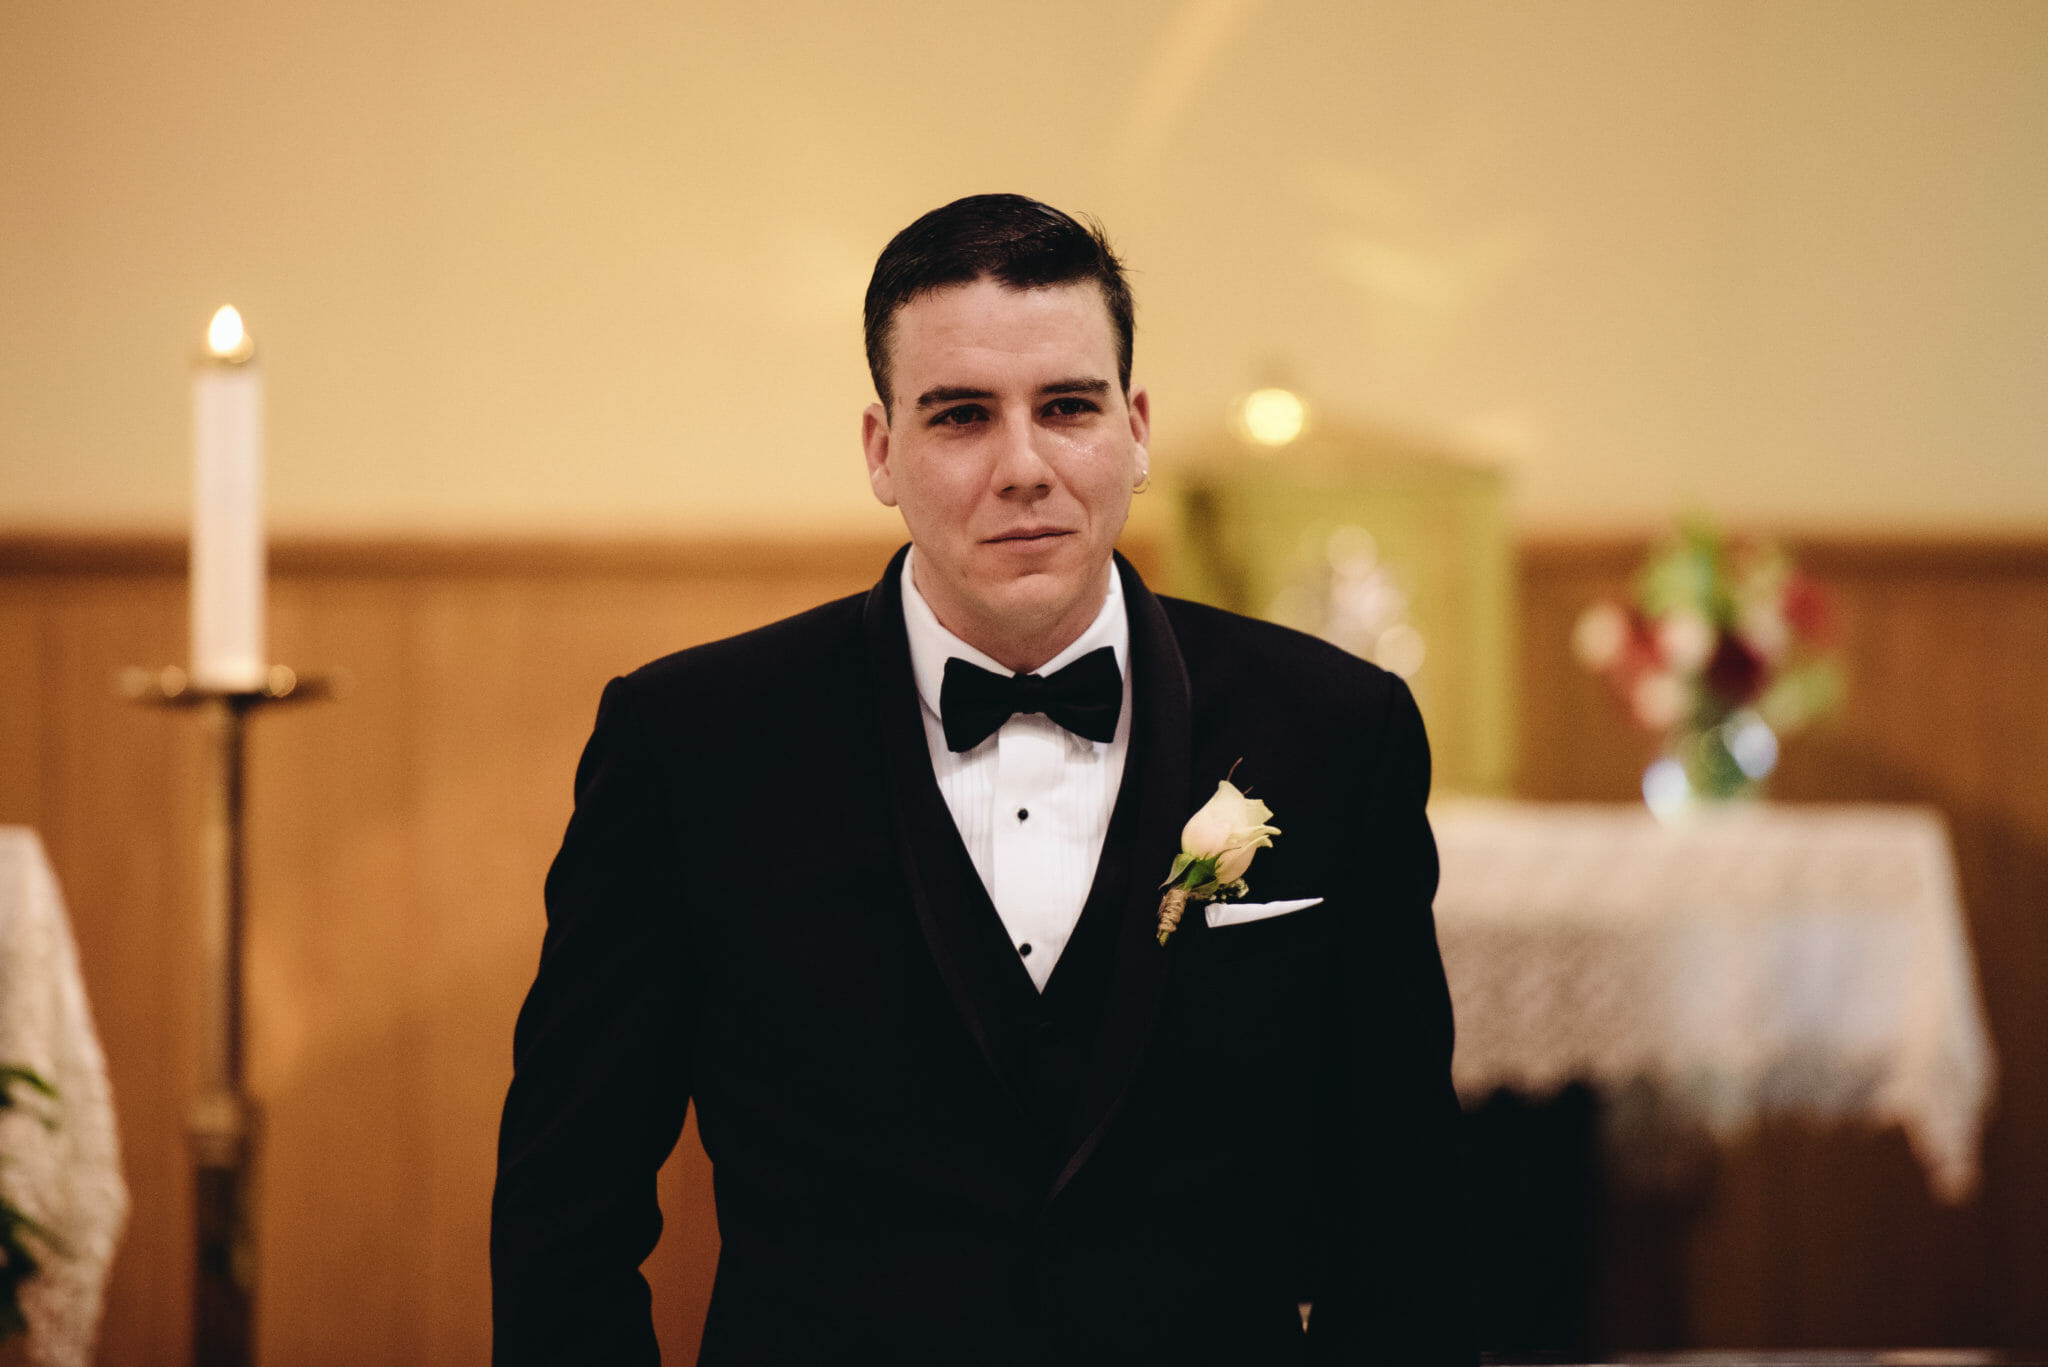 groom tears up when he sees bride for first time